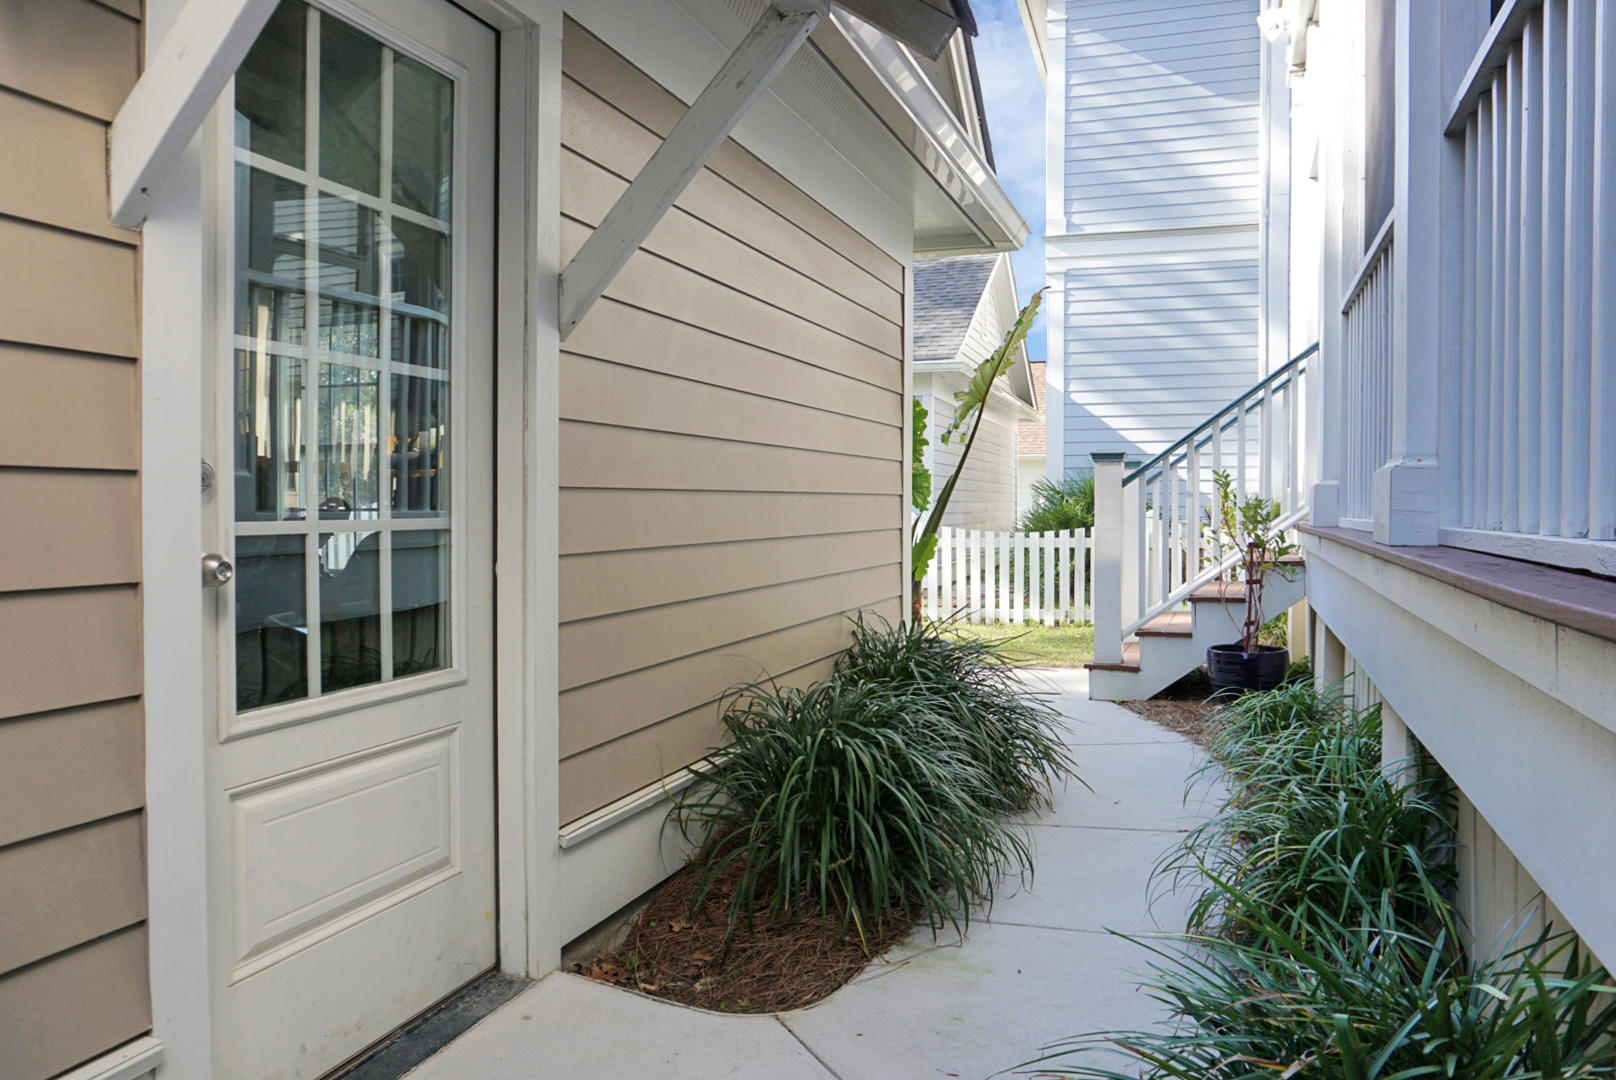 Rivertowne On The Wando Homes For Sale - 2844 Rivertowne, Mount Pleasant, SC - 6